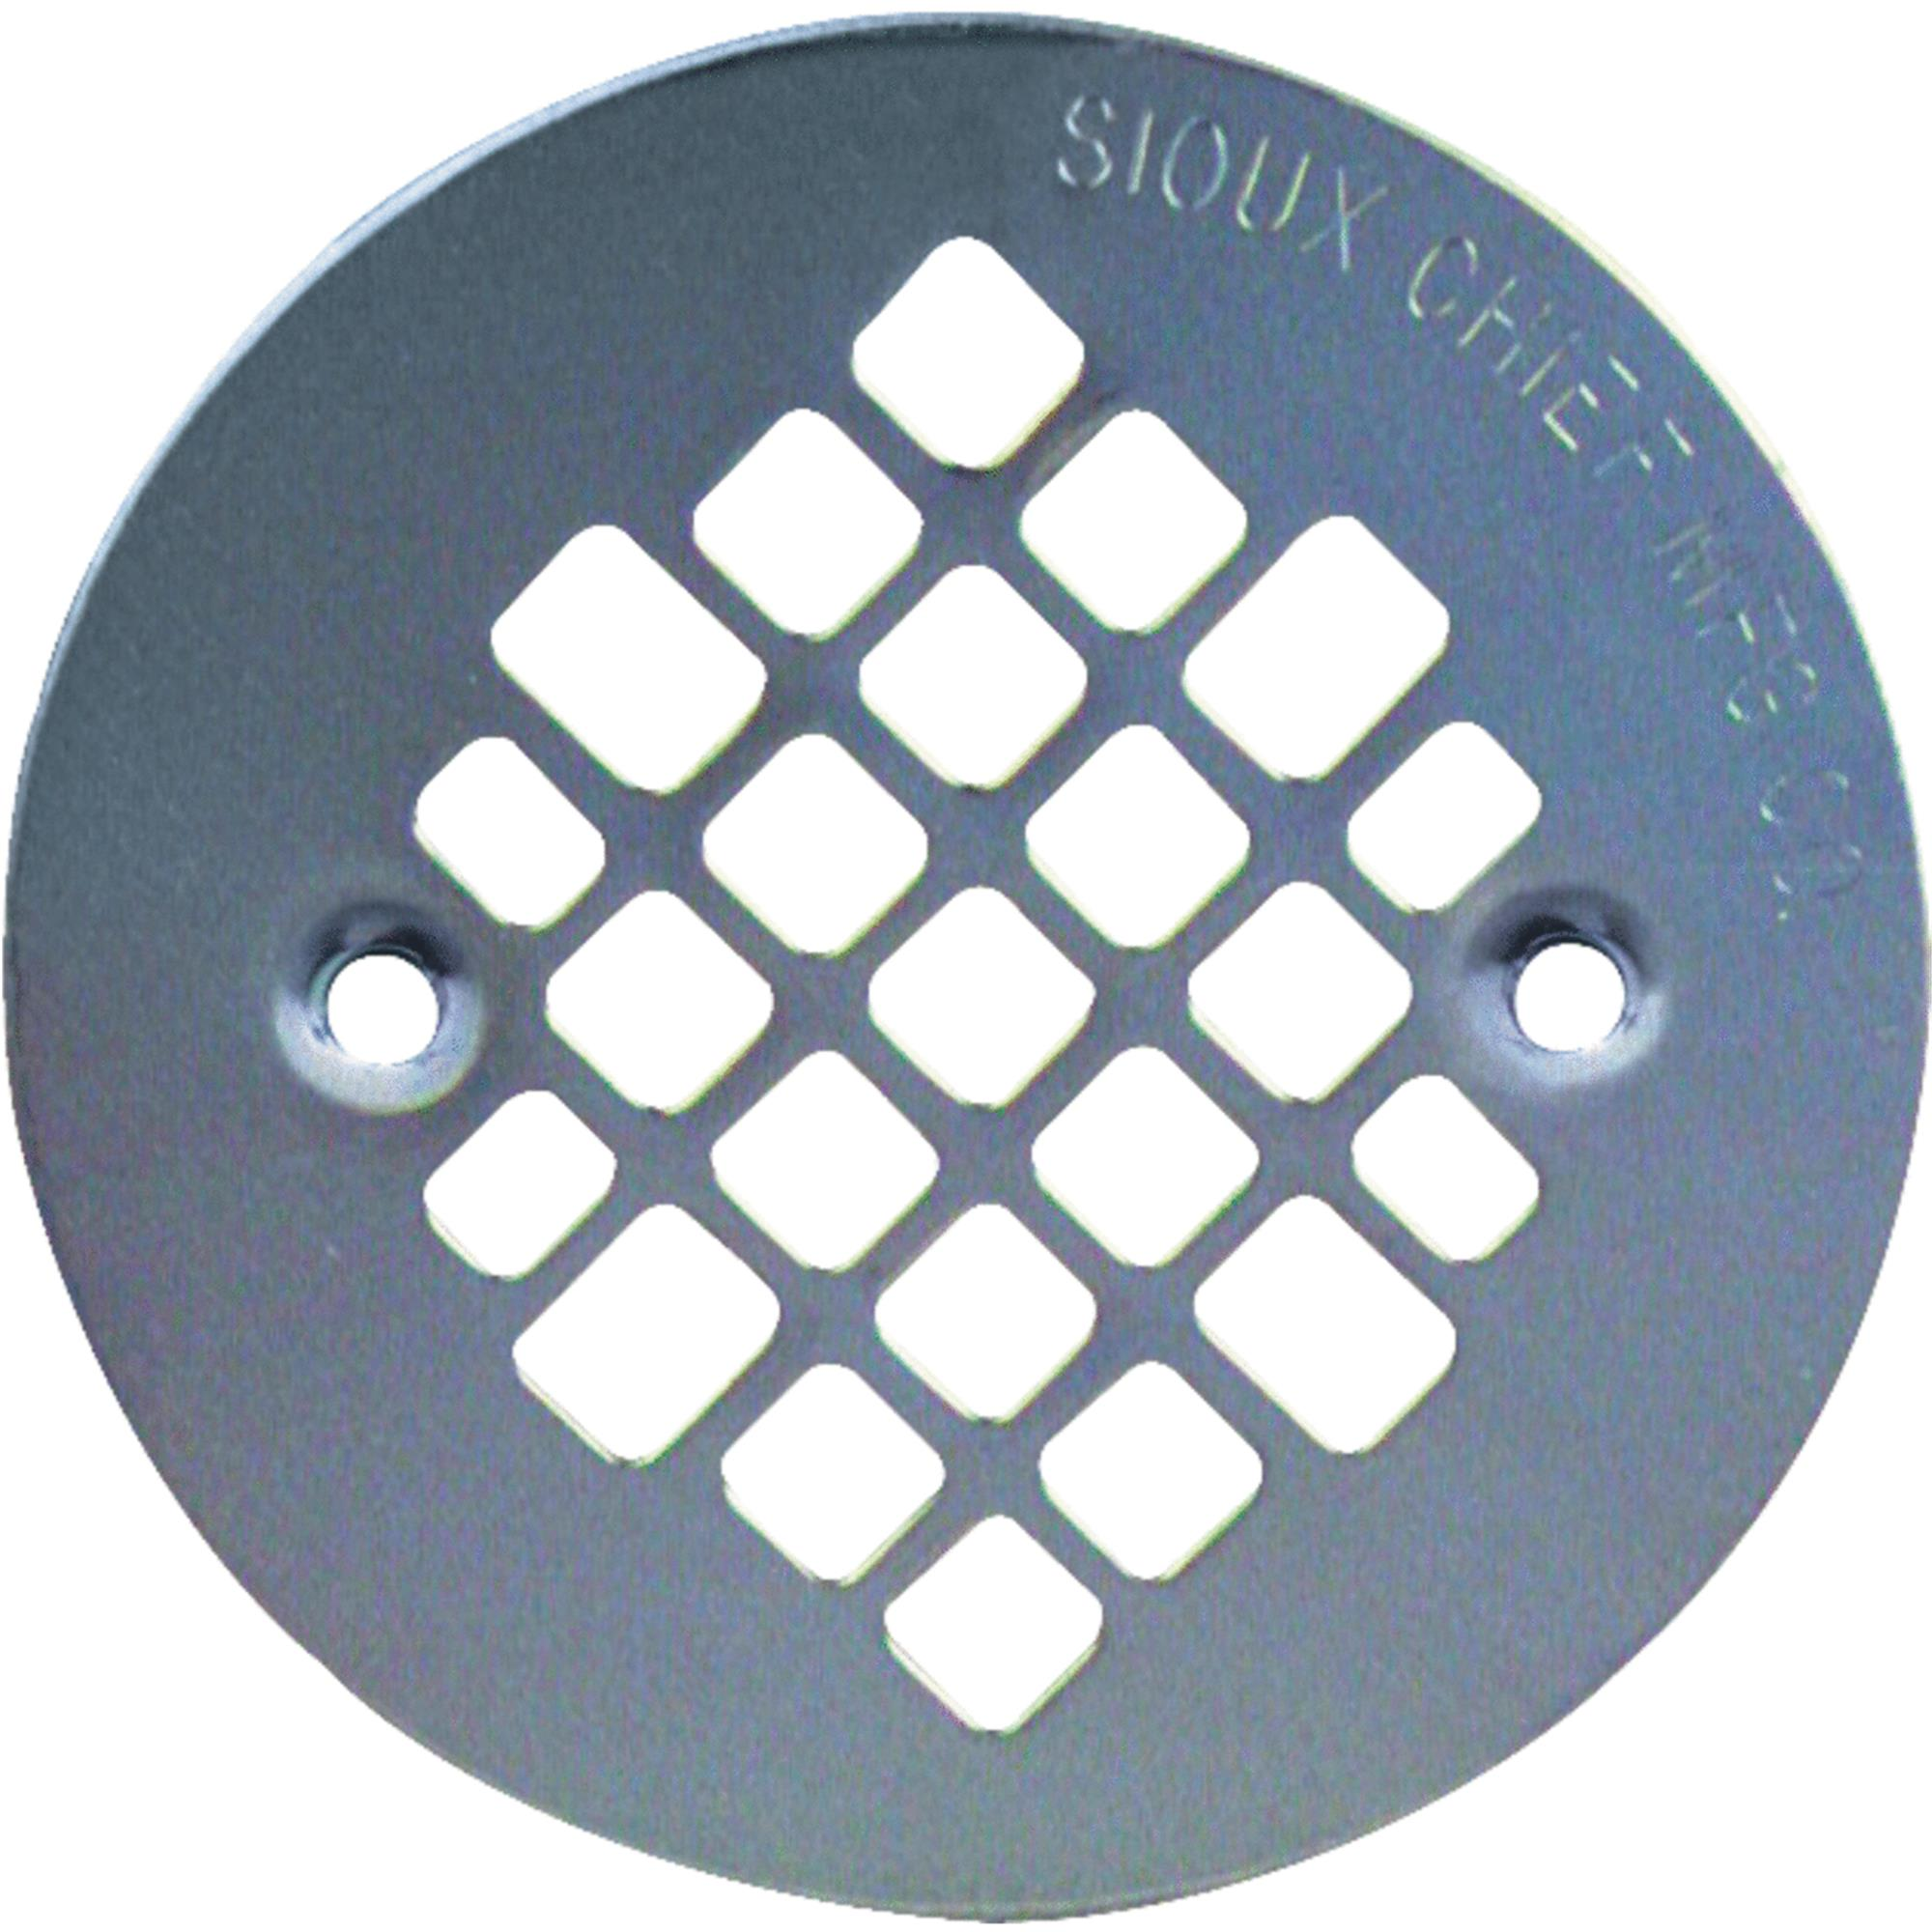 Stainless Steel Shower Drain Strainer With Screws